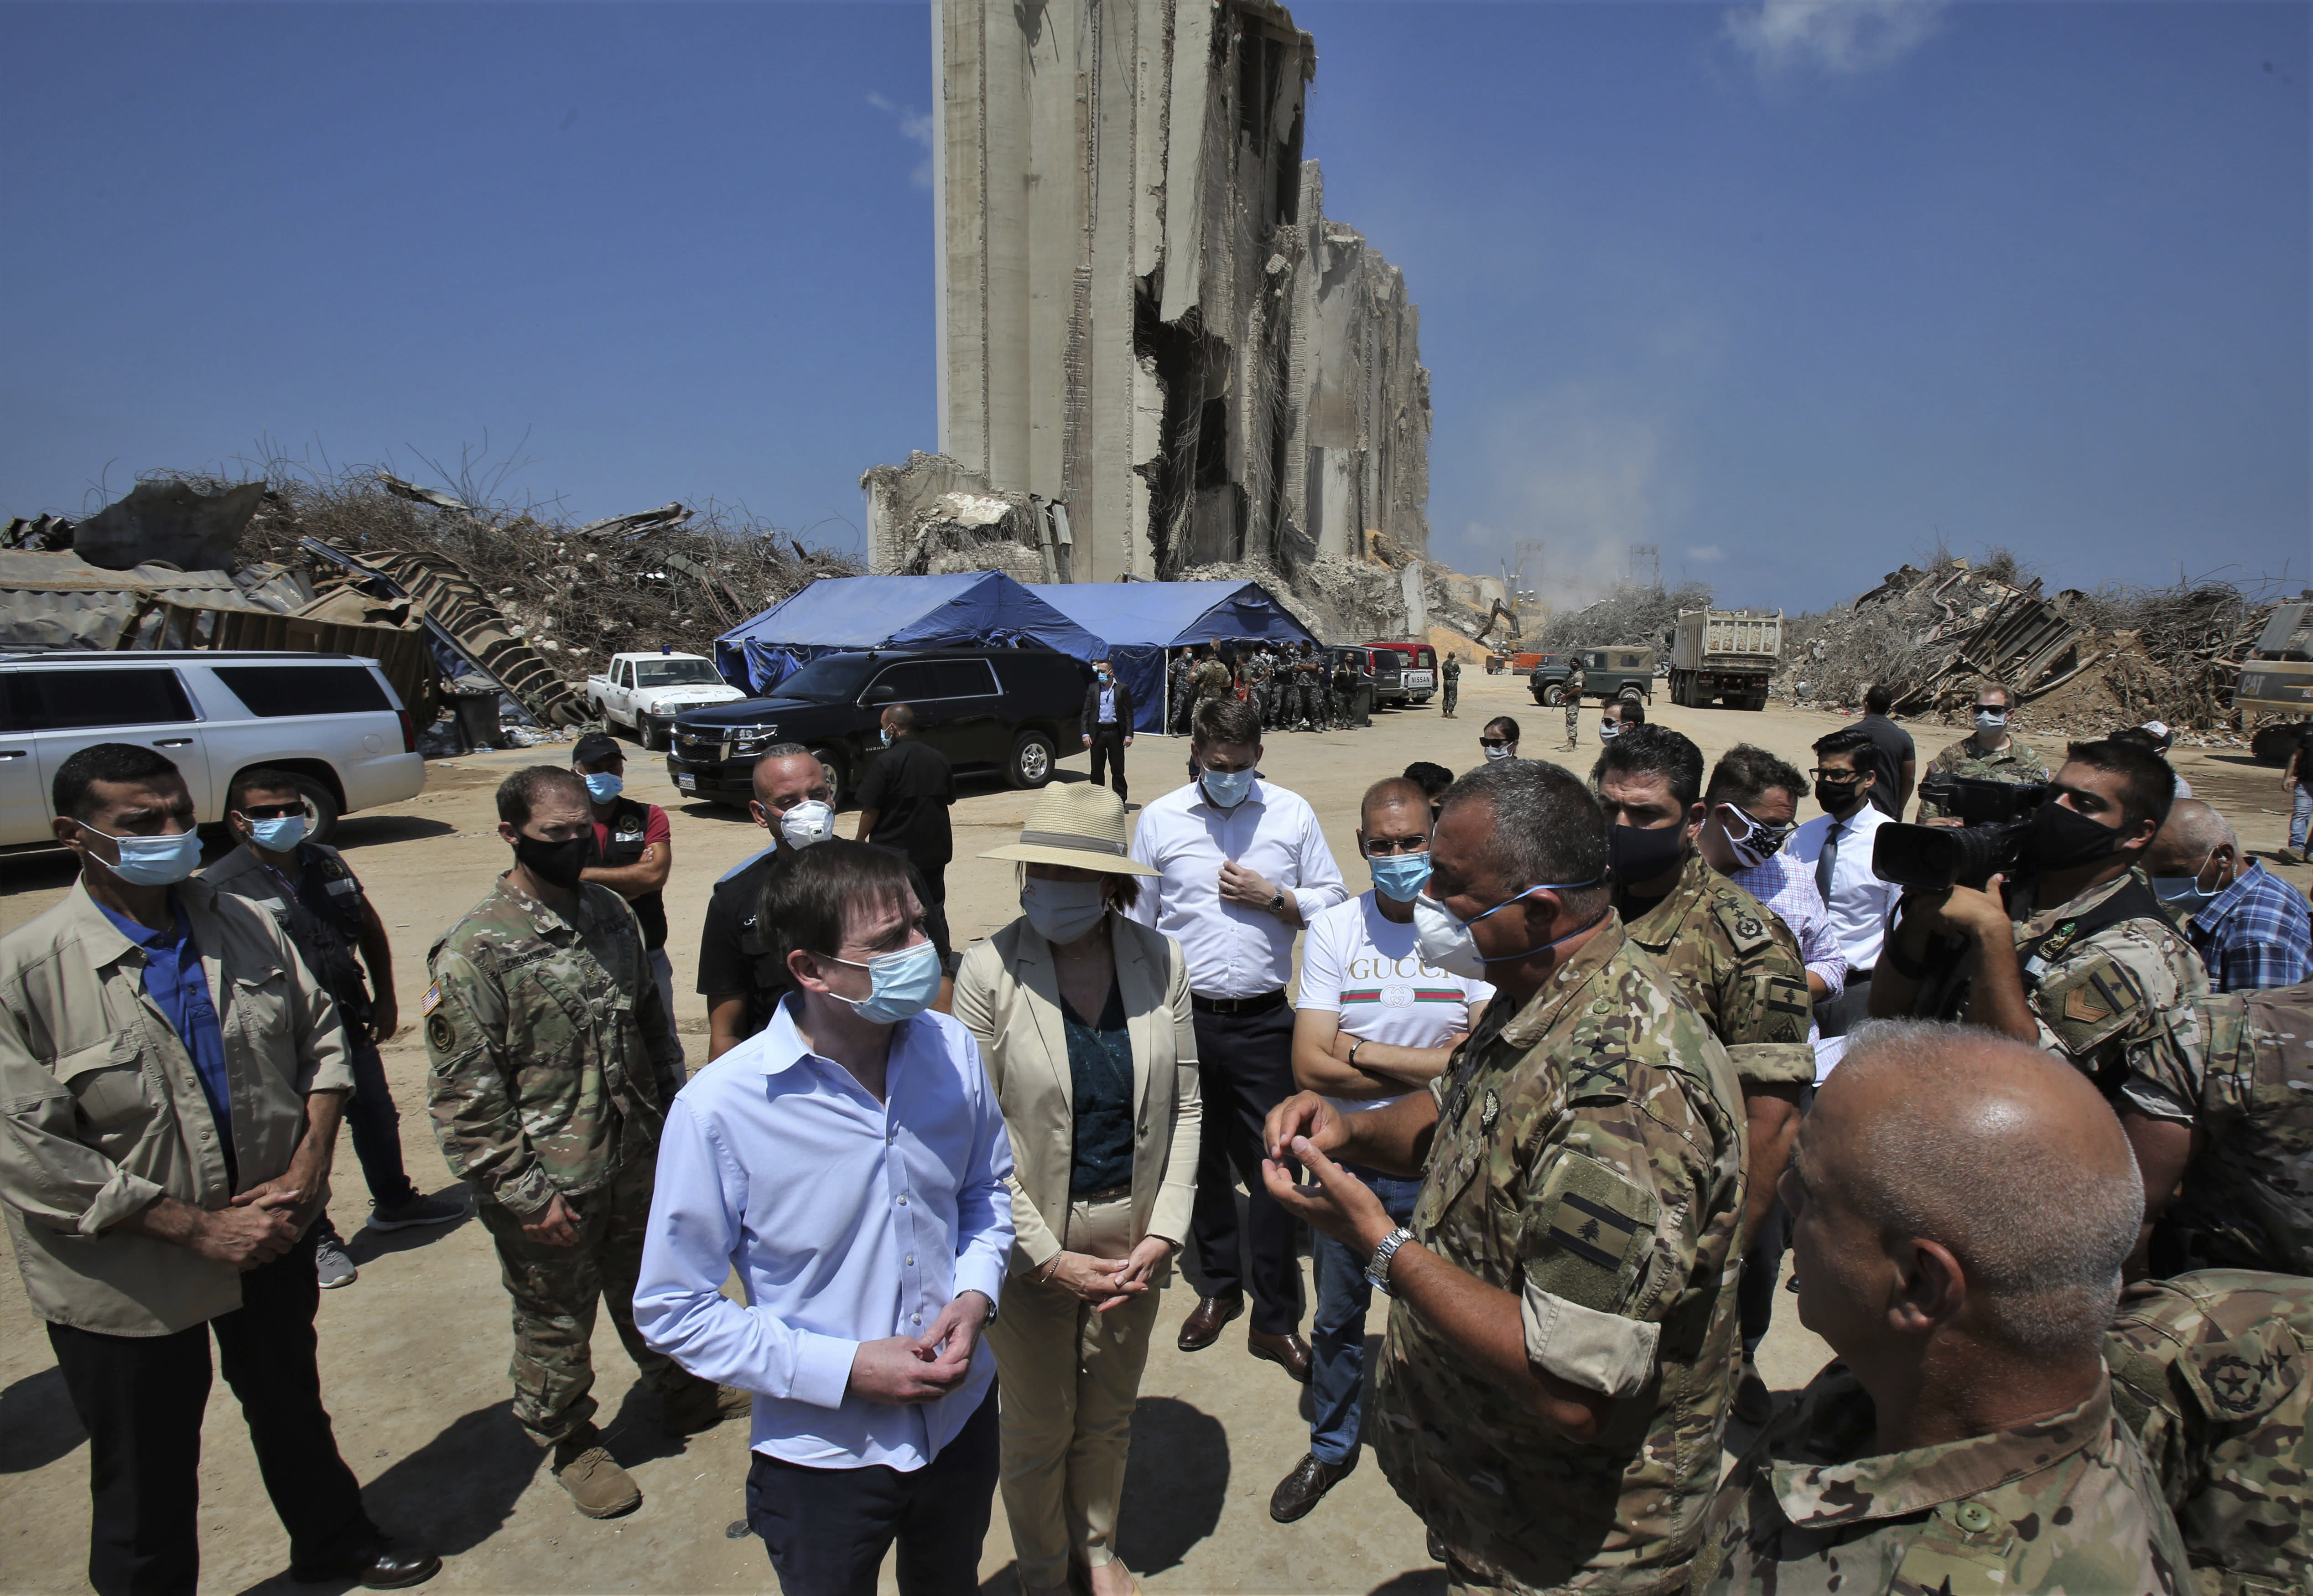 U.S. Undersecretary of State for Political Affairs David Hale, center left, and U.S. Ambassador to Lebanon Dorothy Shea, center right, visit the site of the Aug. 4 explosion in Beirut, Lebanon, Saturday, Aug. 15, 2020. (Nabil Monzer/Pool Photo via AP)